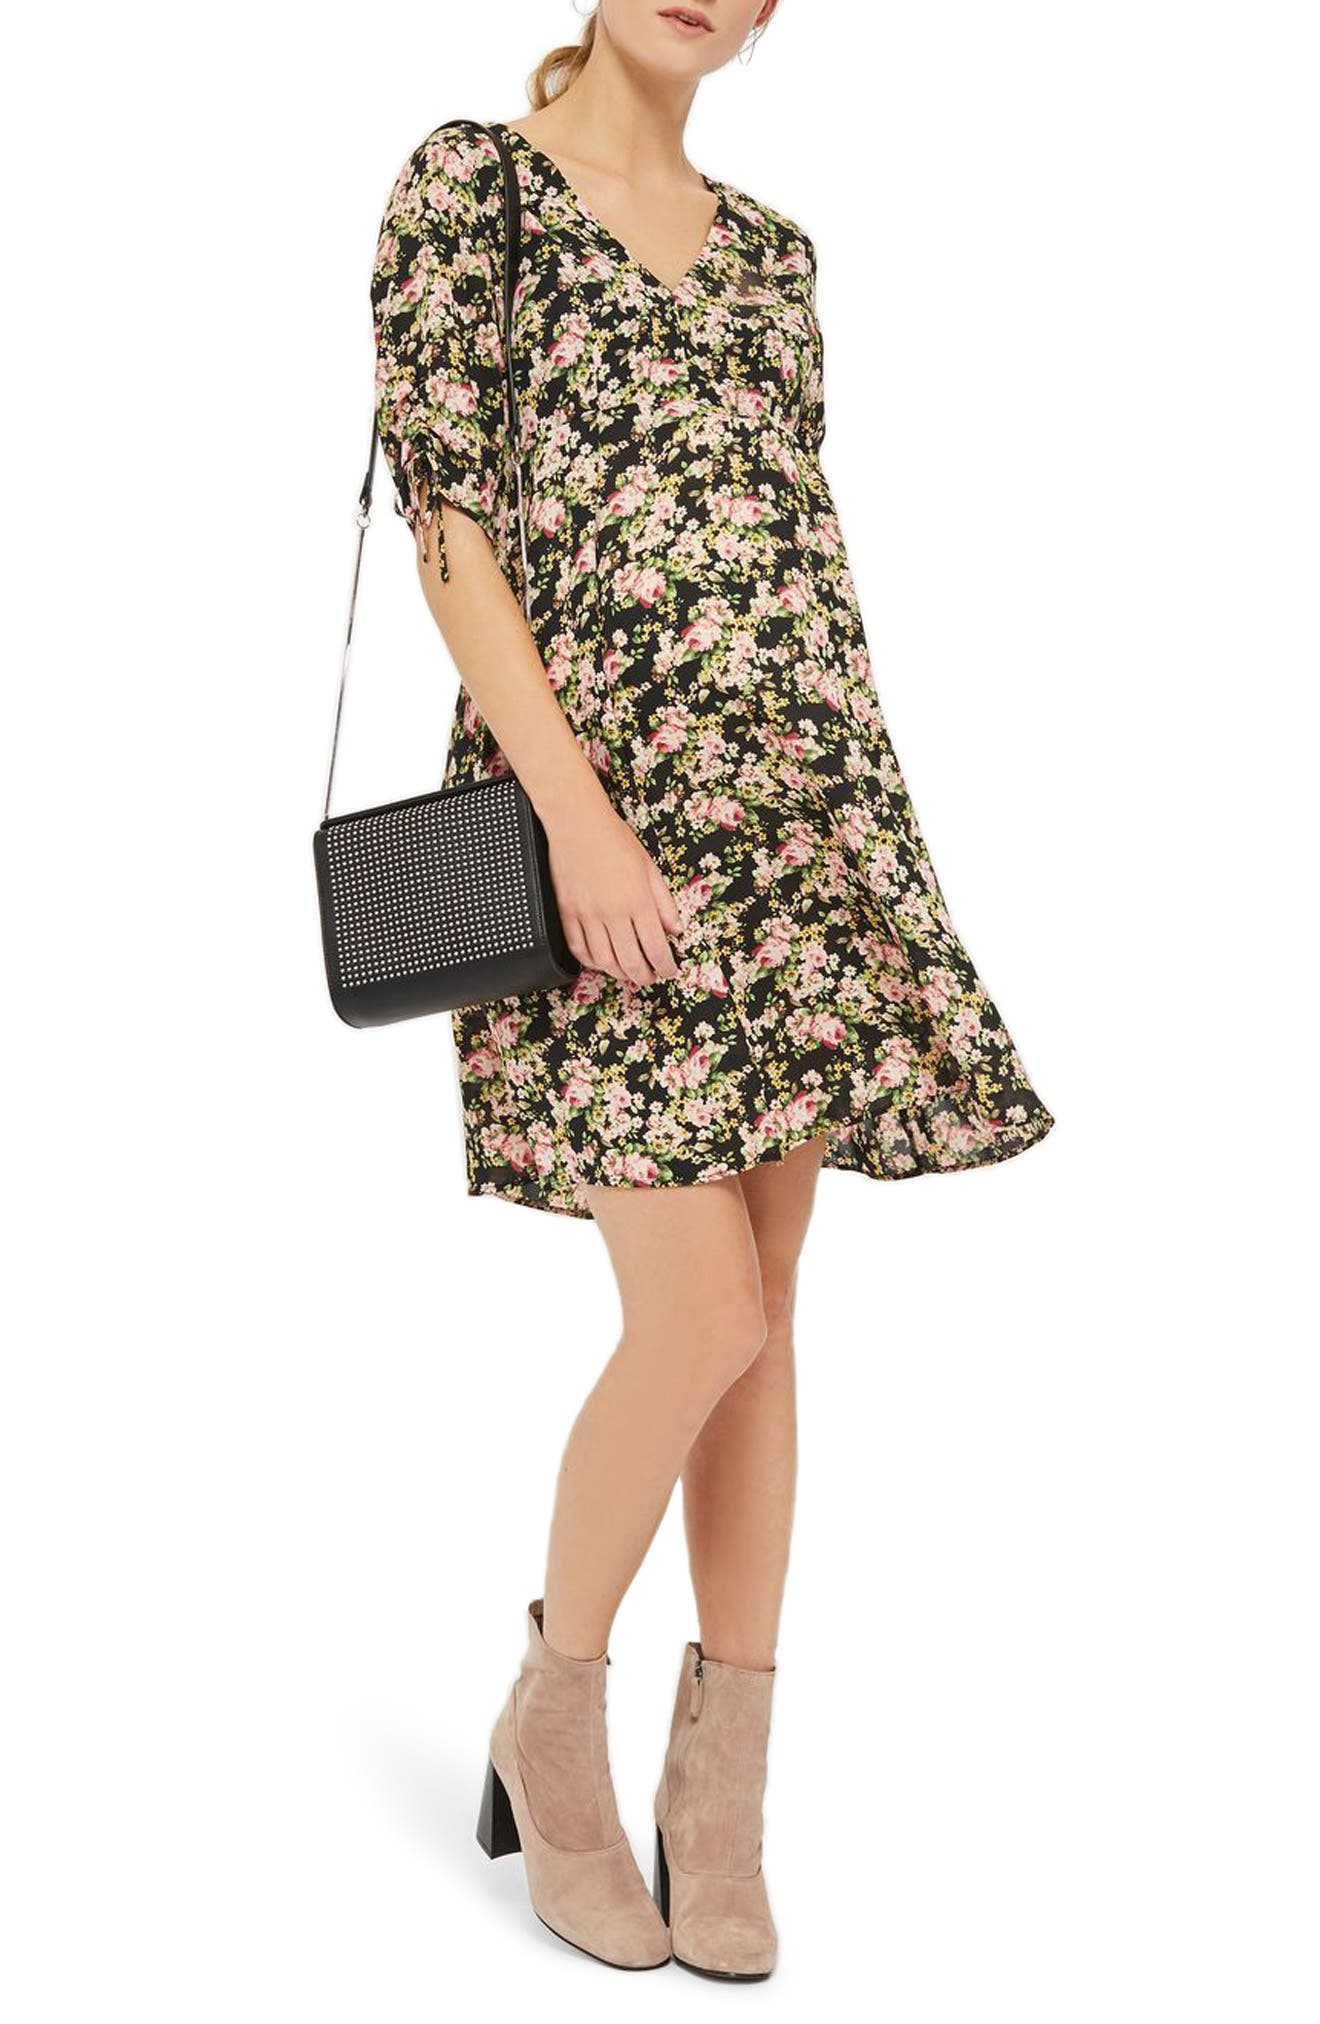 Topshop Romance Floral Maternity Tea Dress